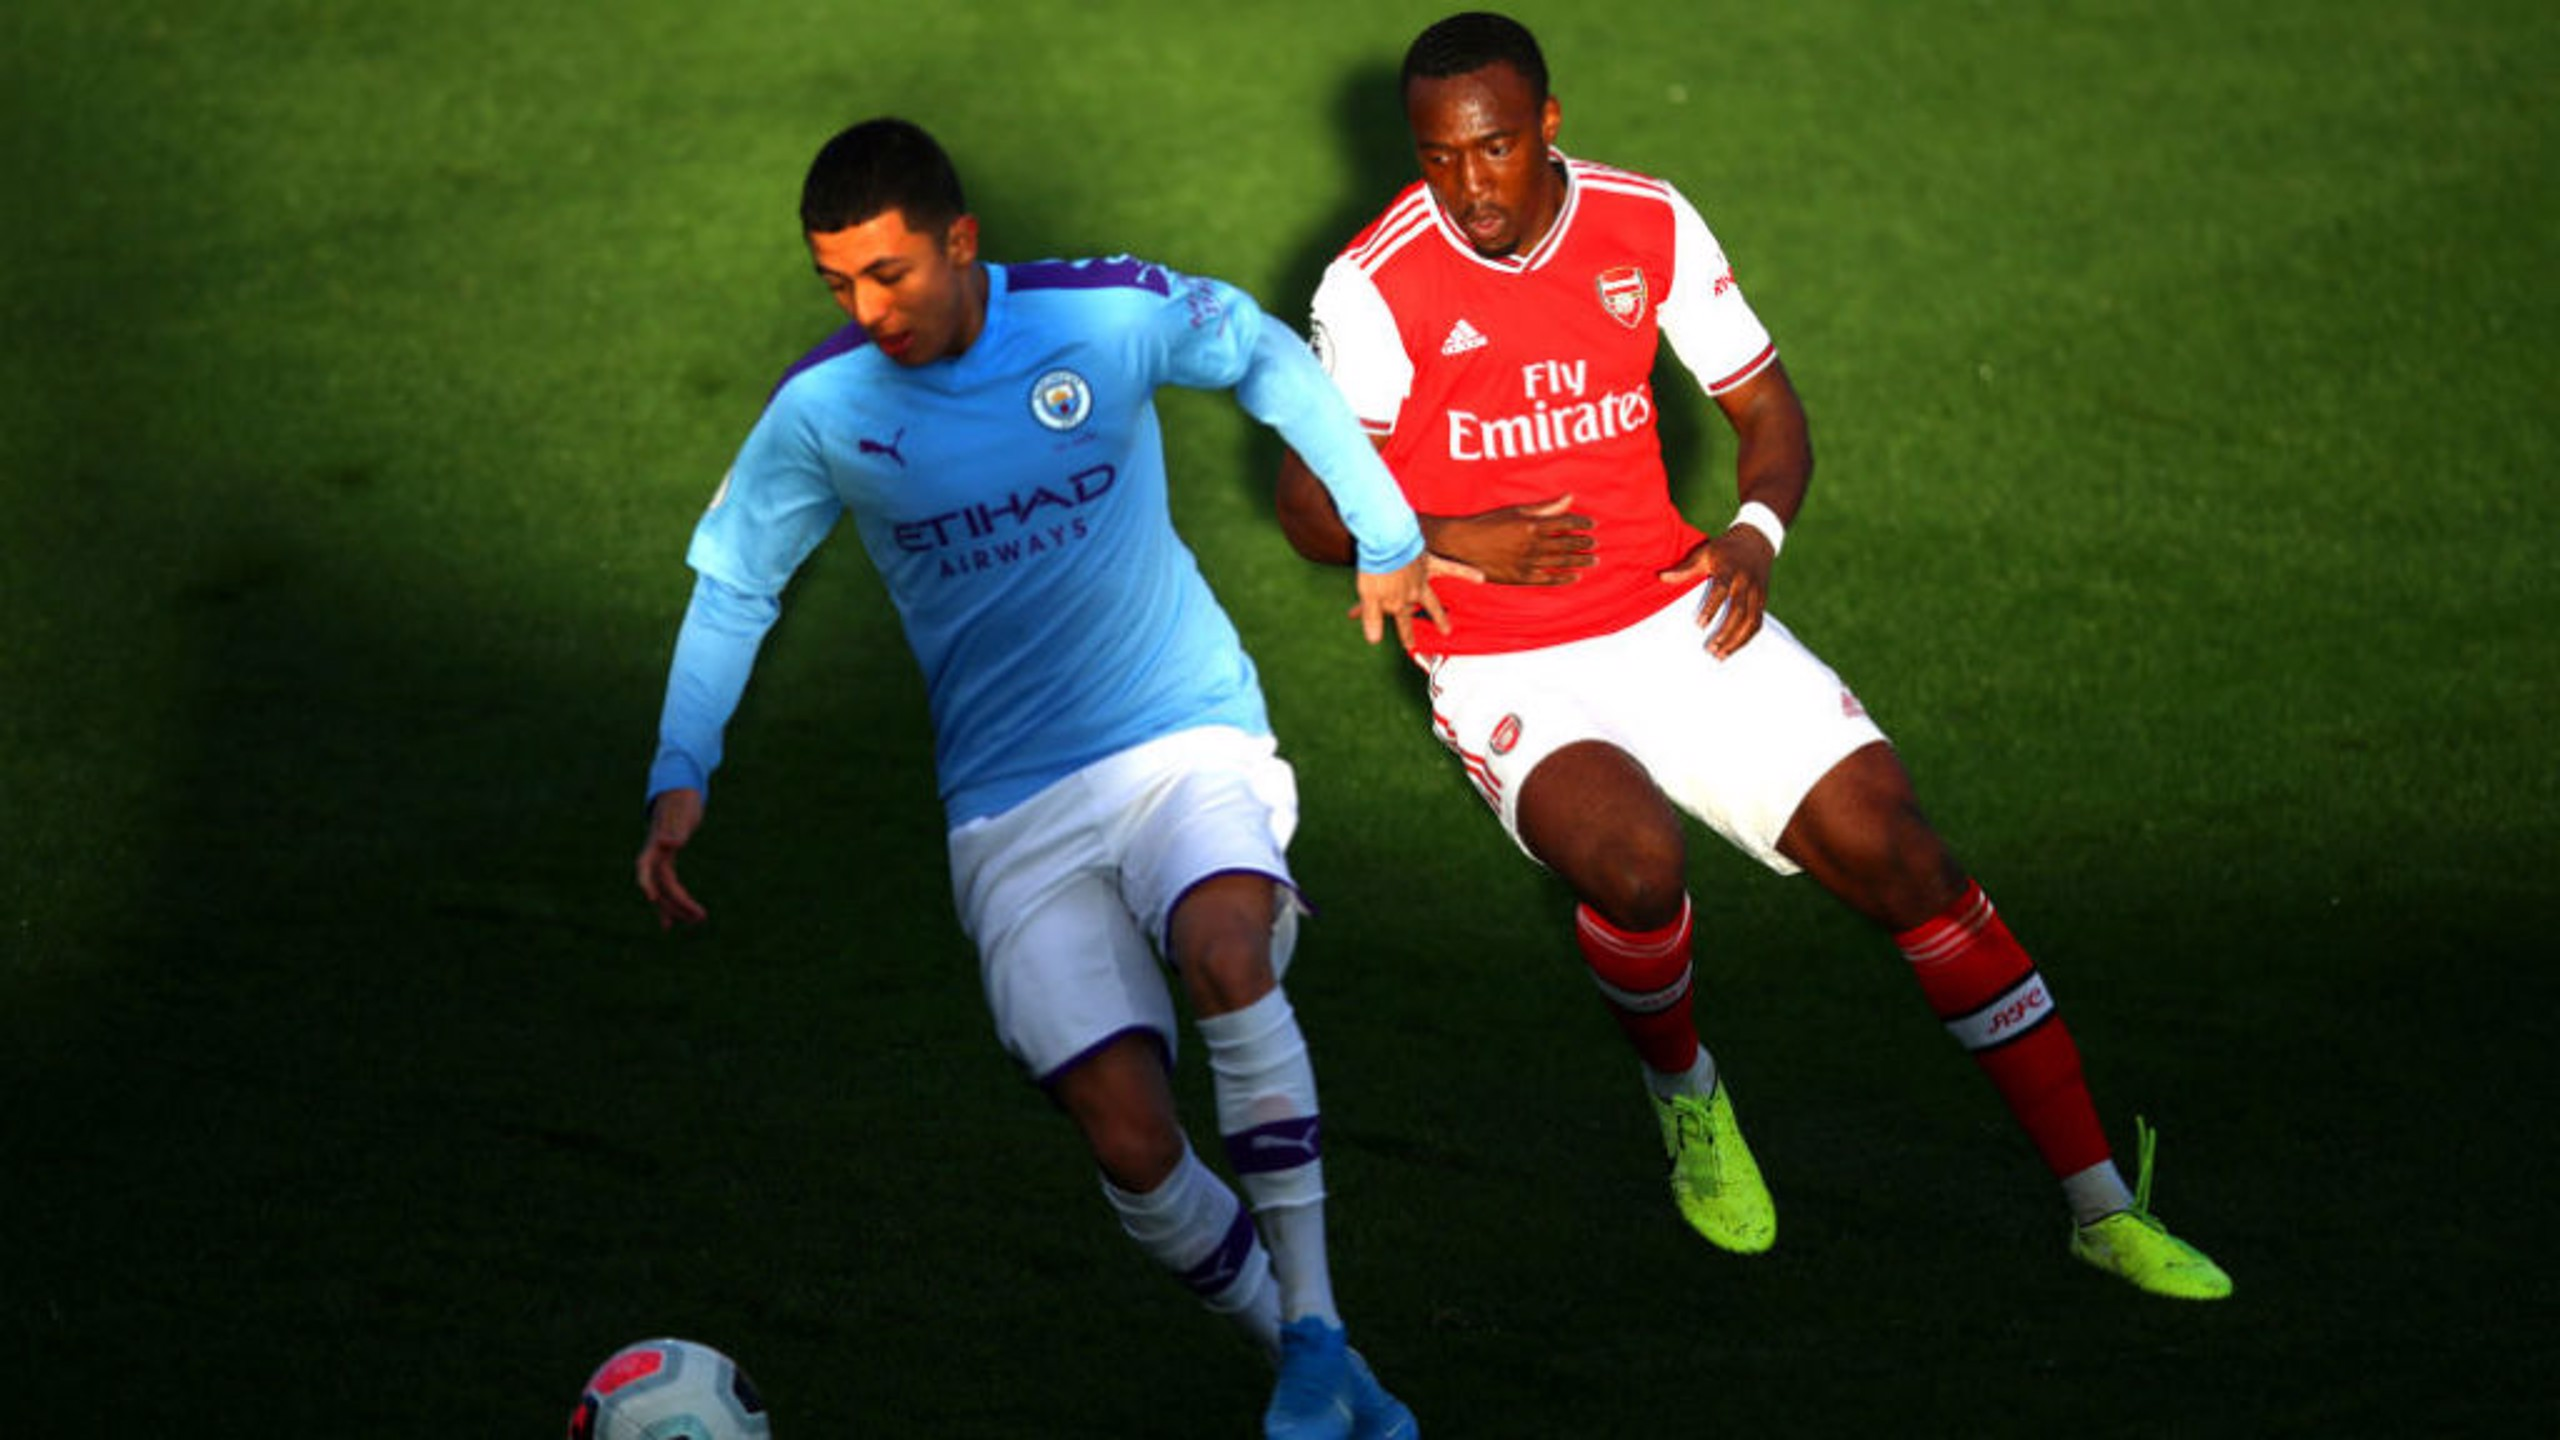 ALL SQUARE: Poveda-Ocampo was on target in the Premier League 2 draw against Arsenal.